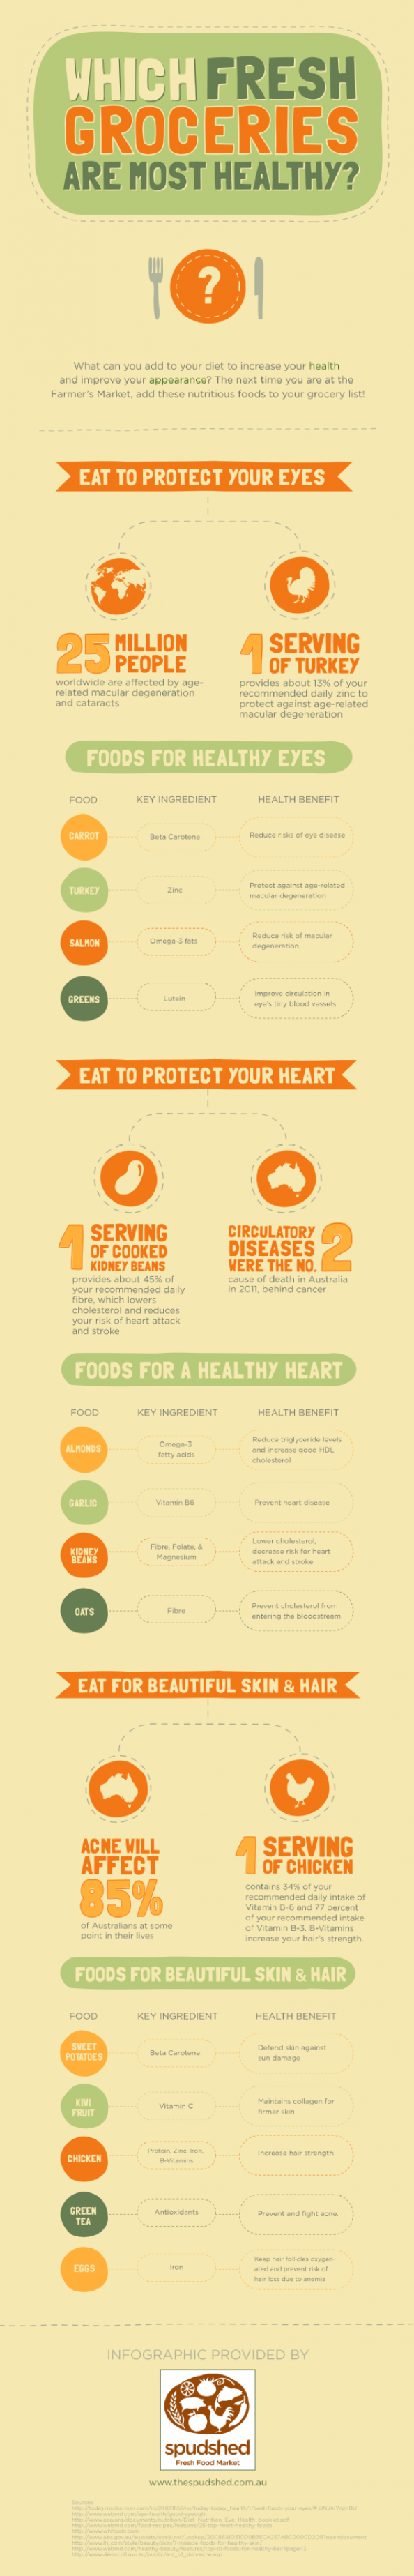 Which Fresh Groceries Are Most Healthy? Infographic